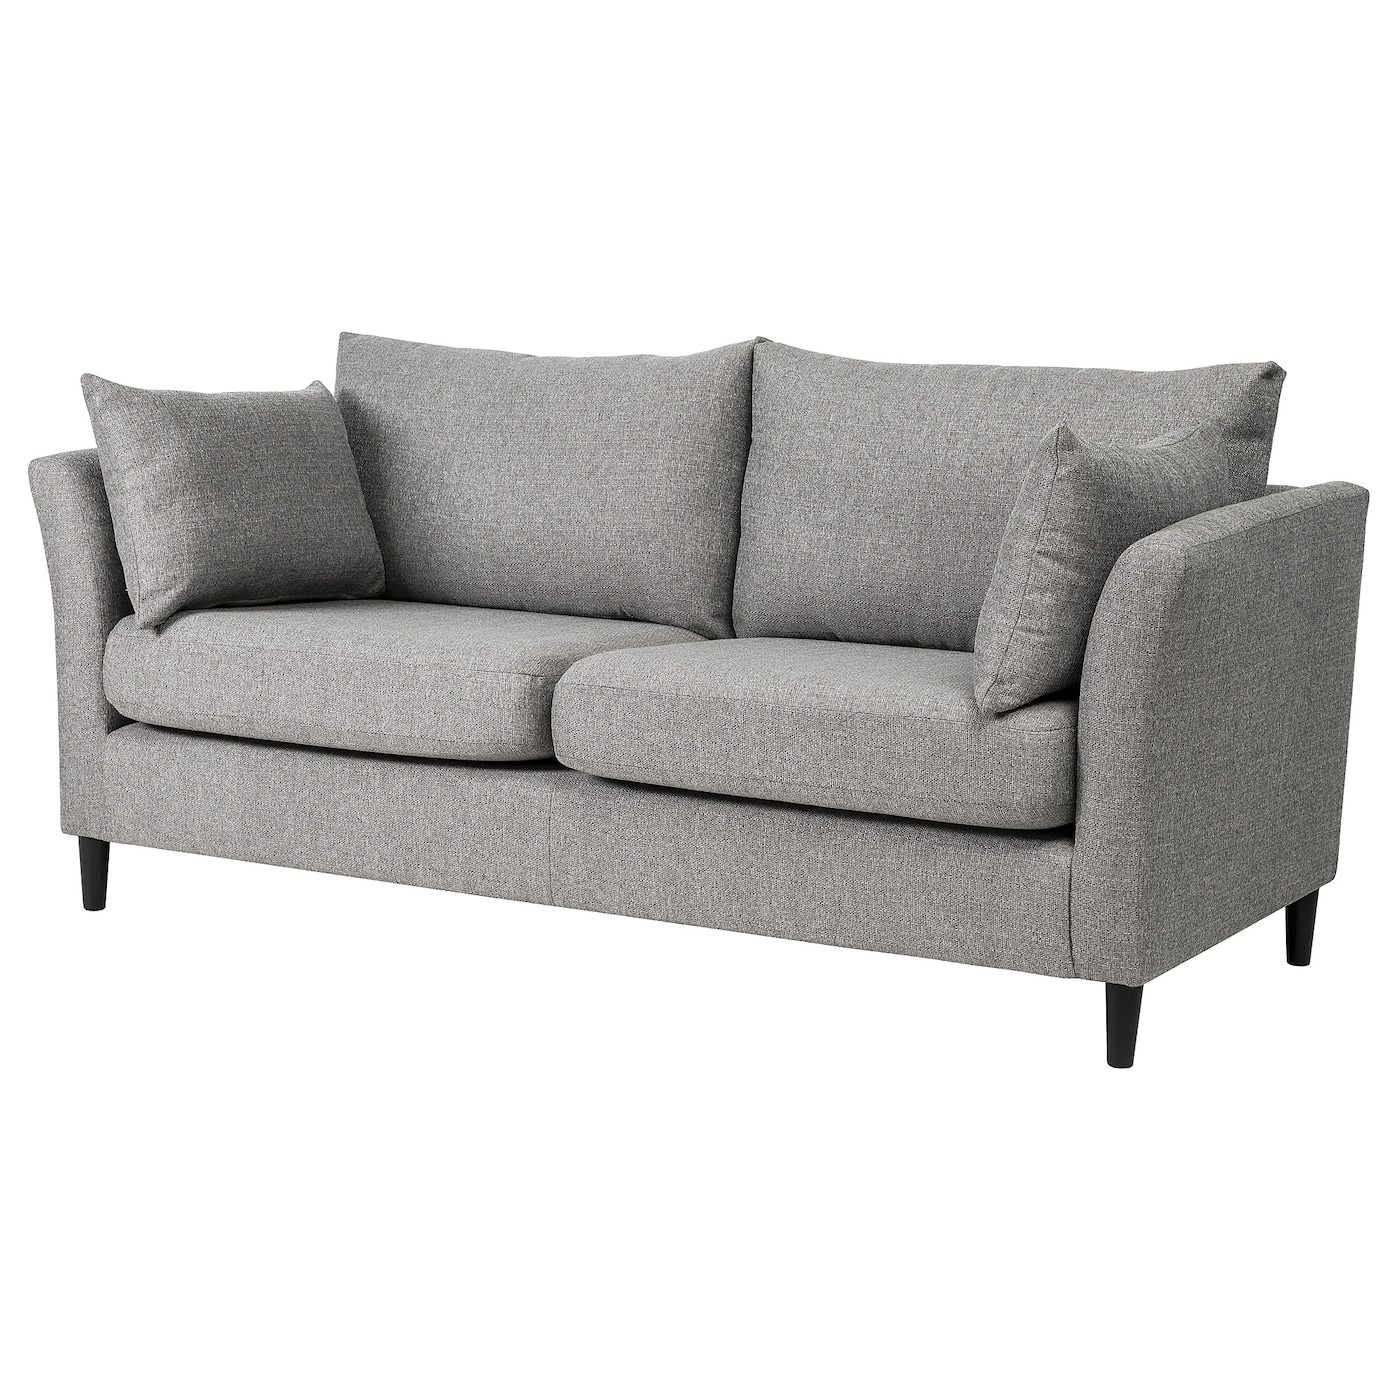 Furniture For A Small Bedroom 3 Seater Sofa Ikea